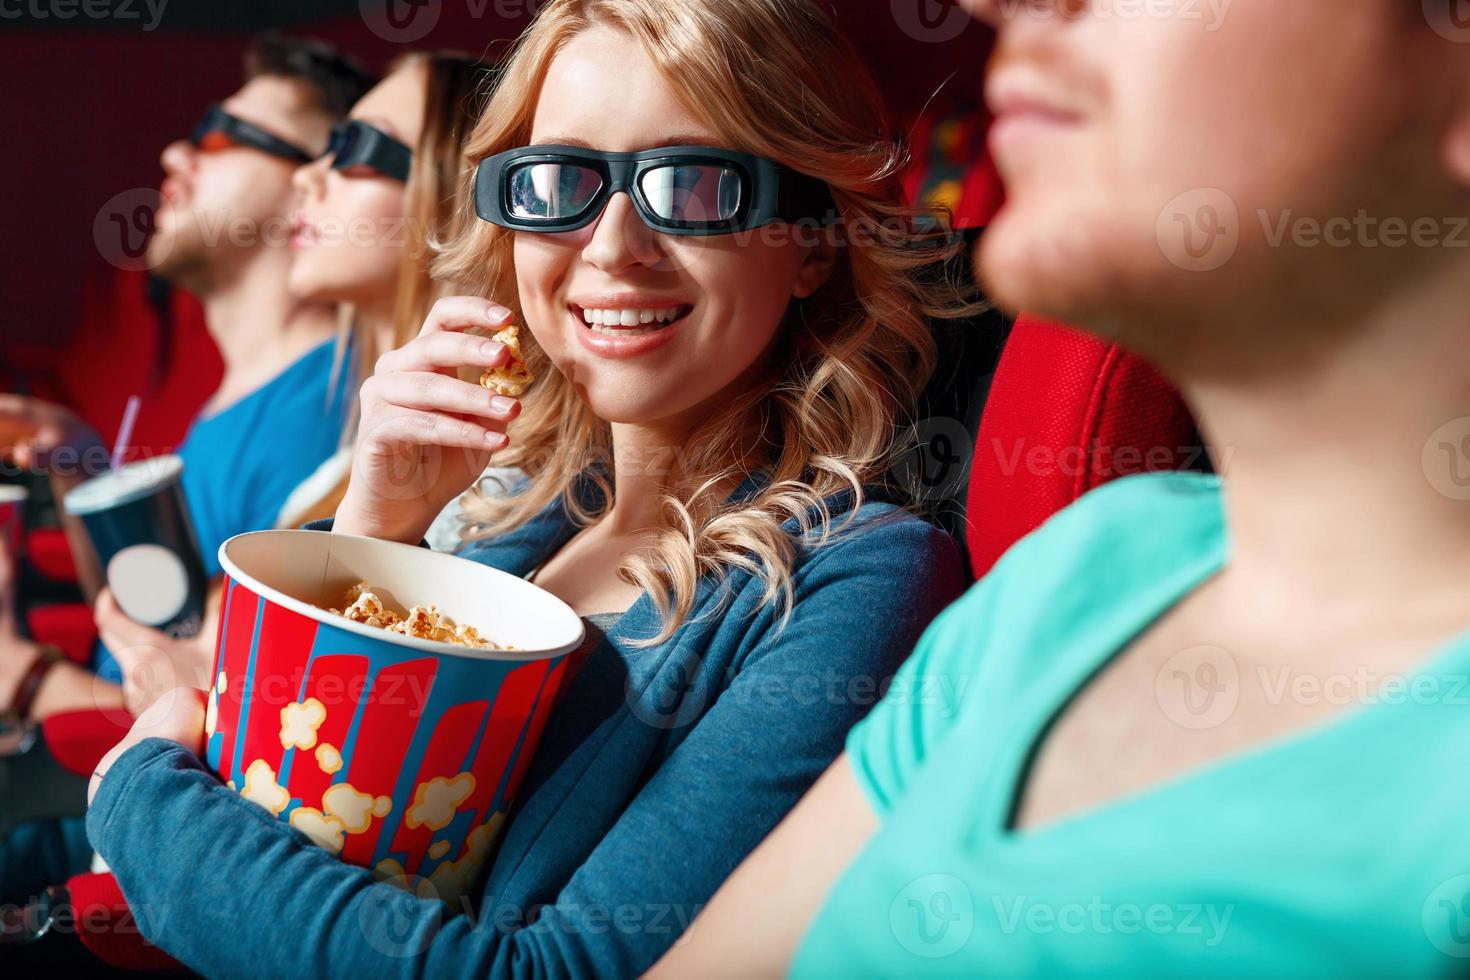 Woman in 3 d glasses eating popcorn photo